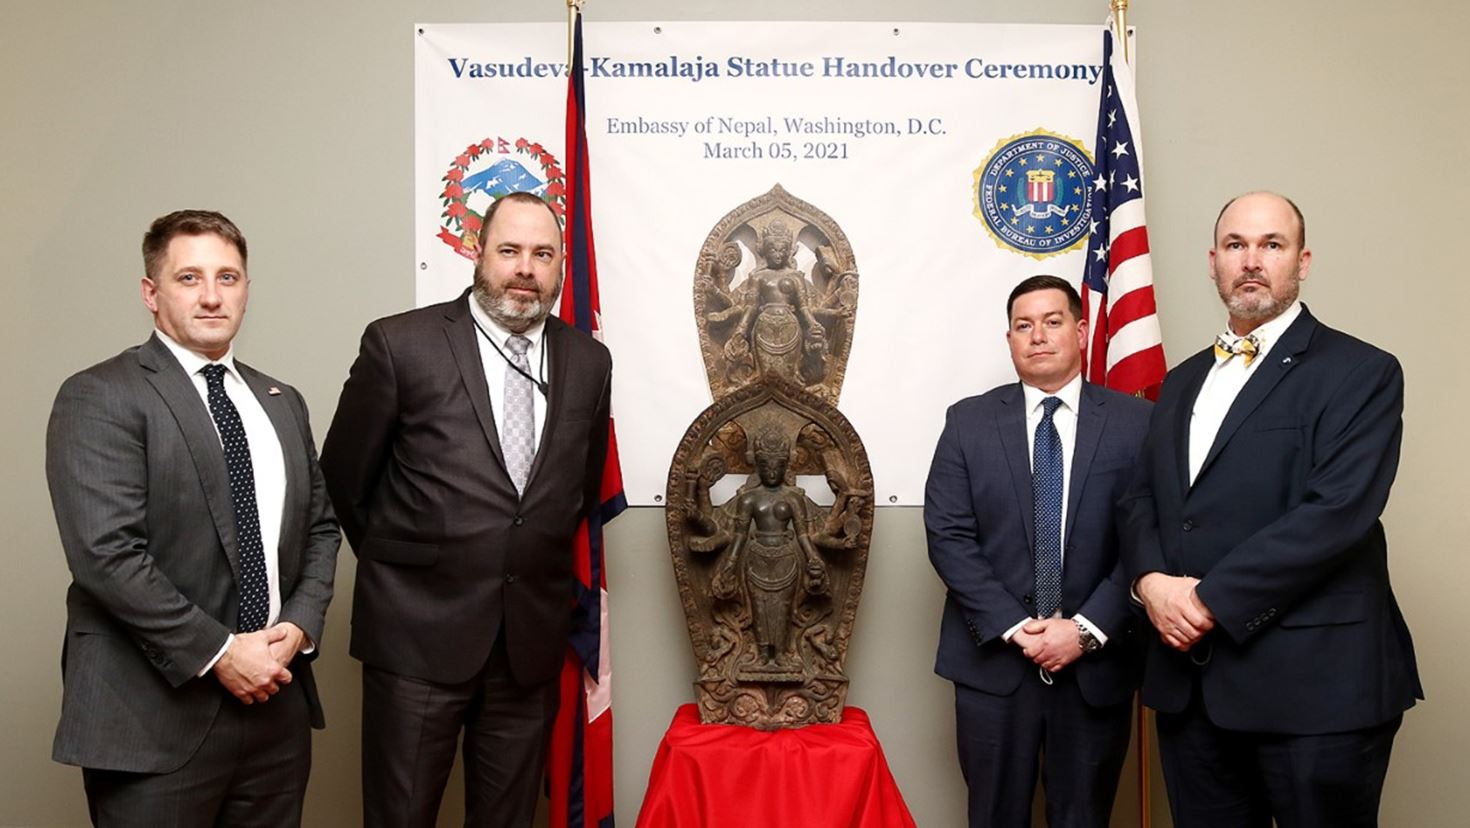 Corporal Mayfield with FBI during stele handover to Nepal